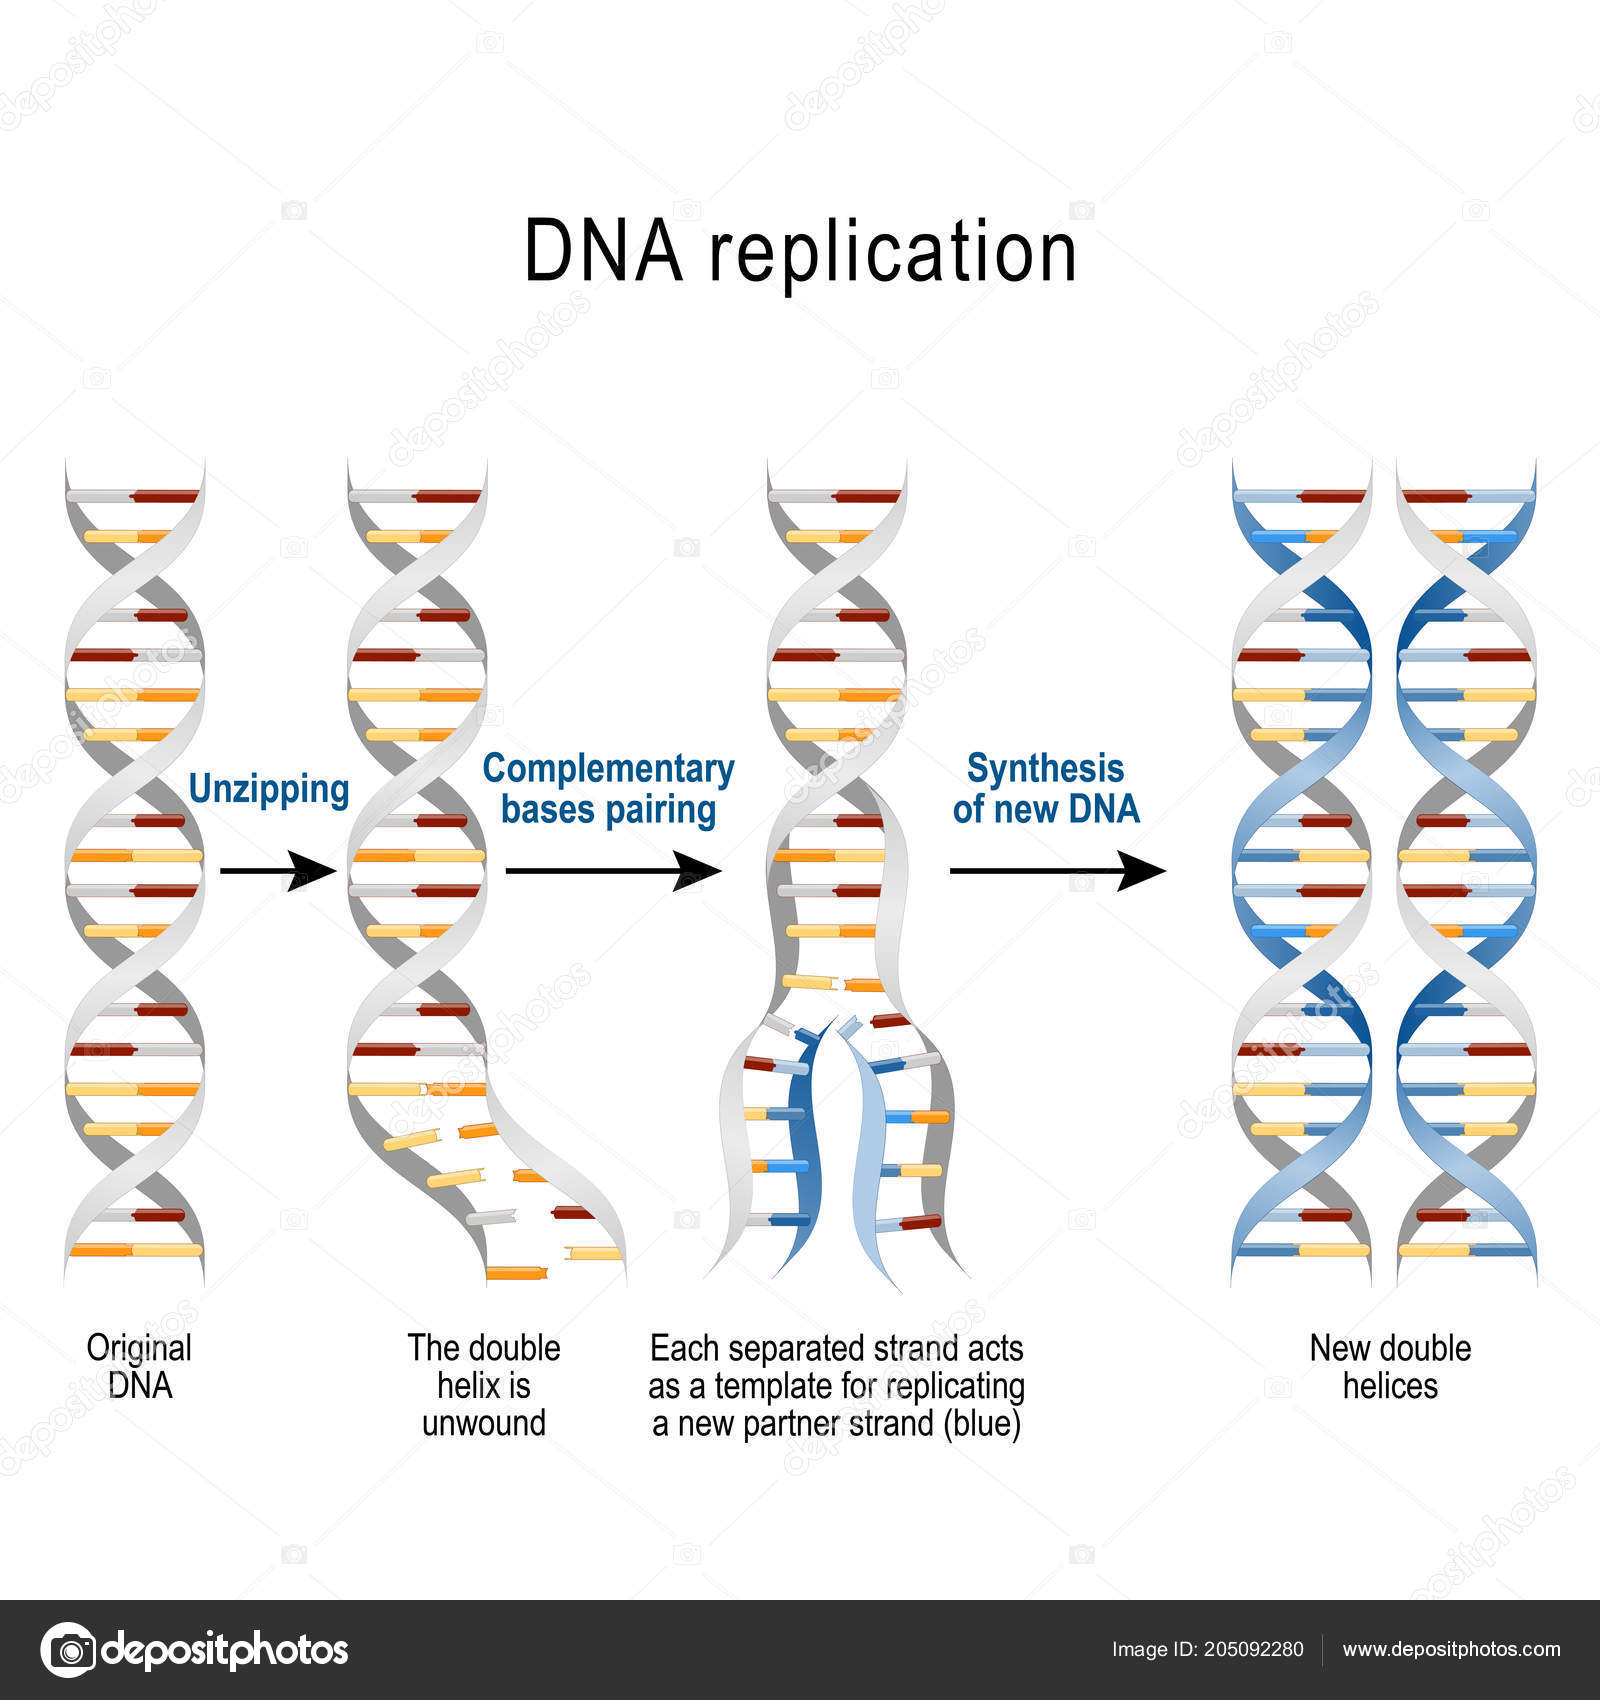 Dna Replication Steps Double Helix Unwound Each Separated Strand ...